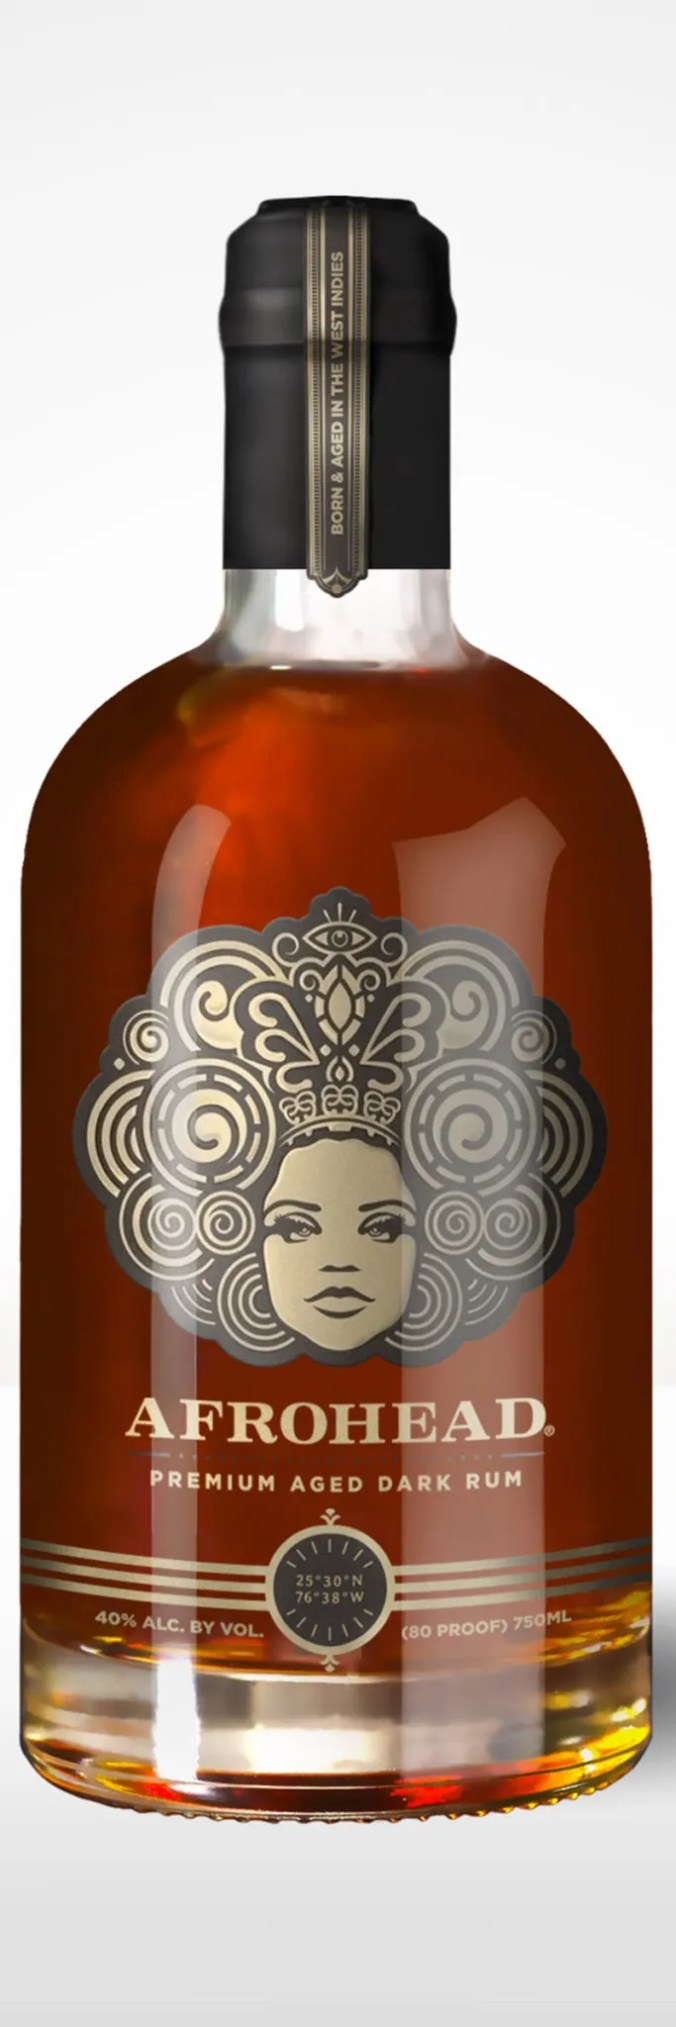 Afrohead Original aged rum from Trinidad